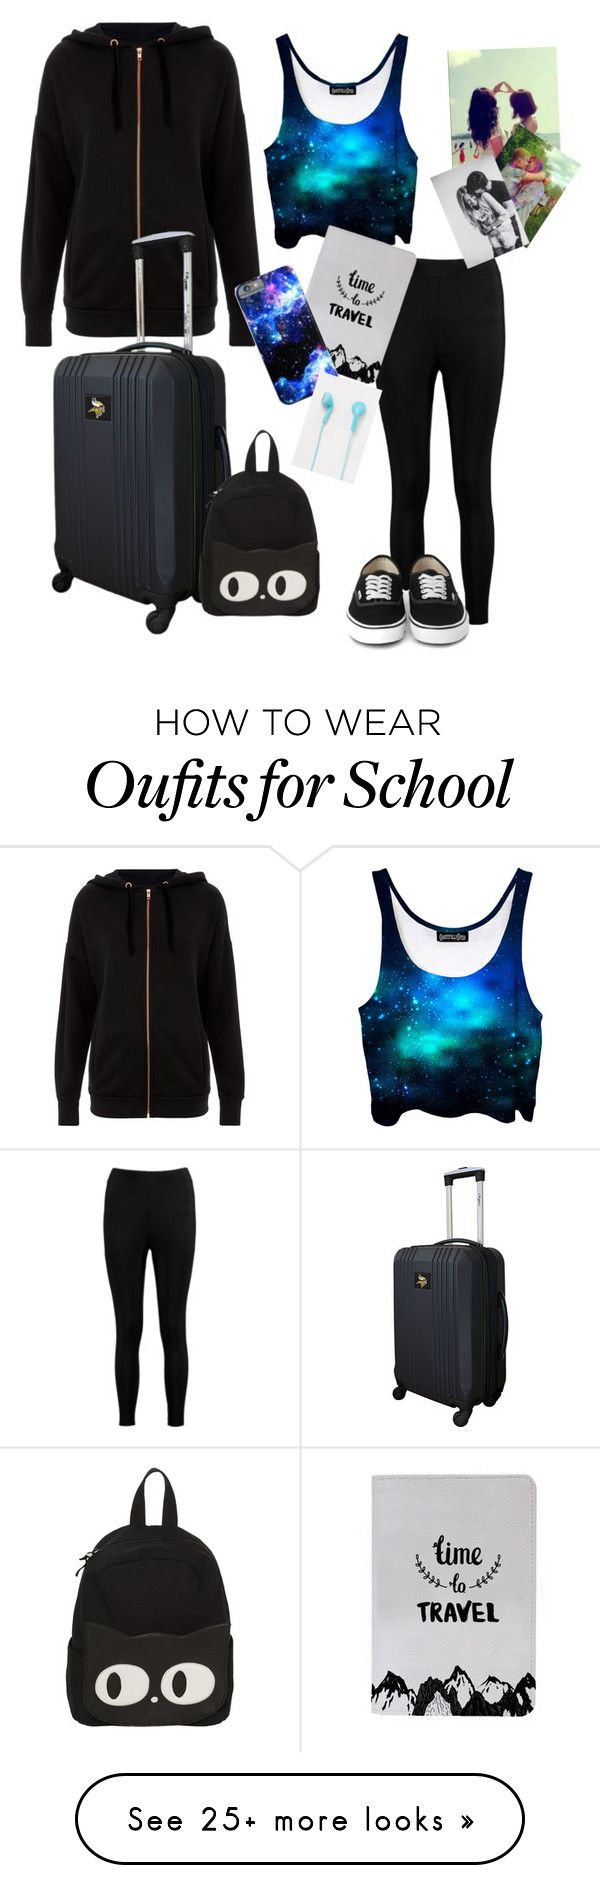 """dreaming of traveling with your other half"" by kaitlynbowden on Polyvore featuring Finery London, Boohoo, MOJO, BRIT* and Happy Plugs"